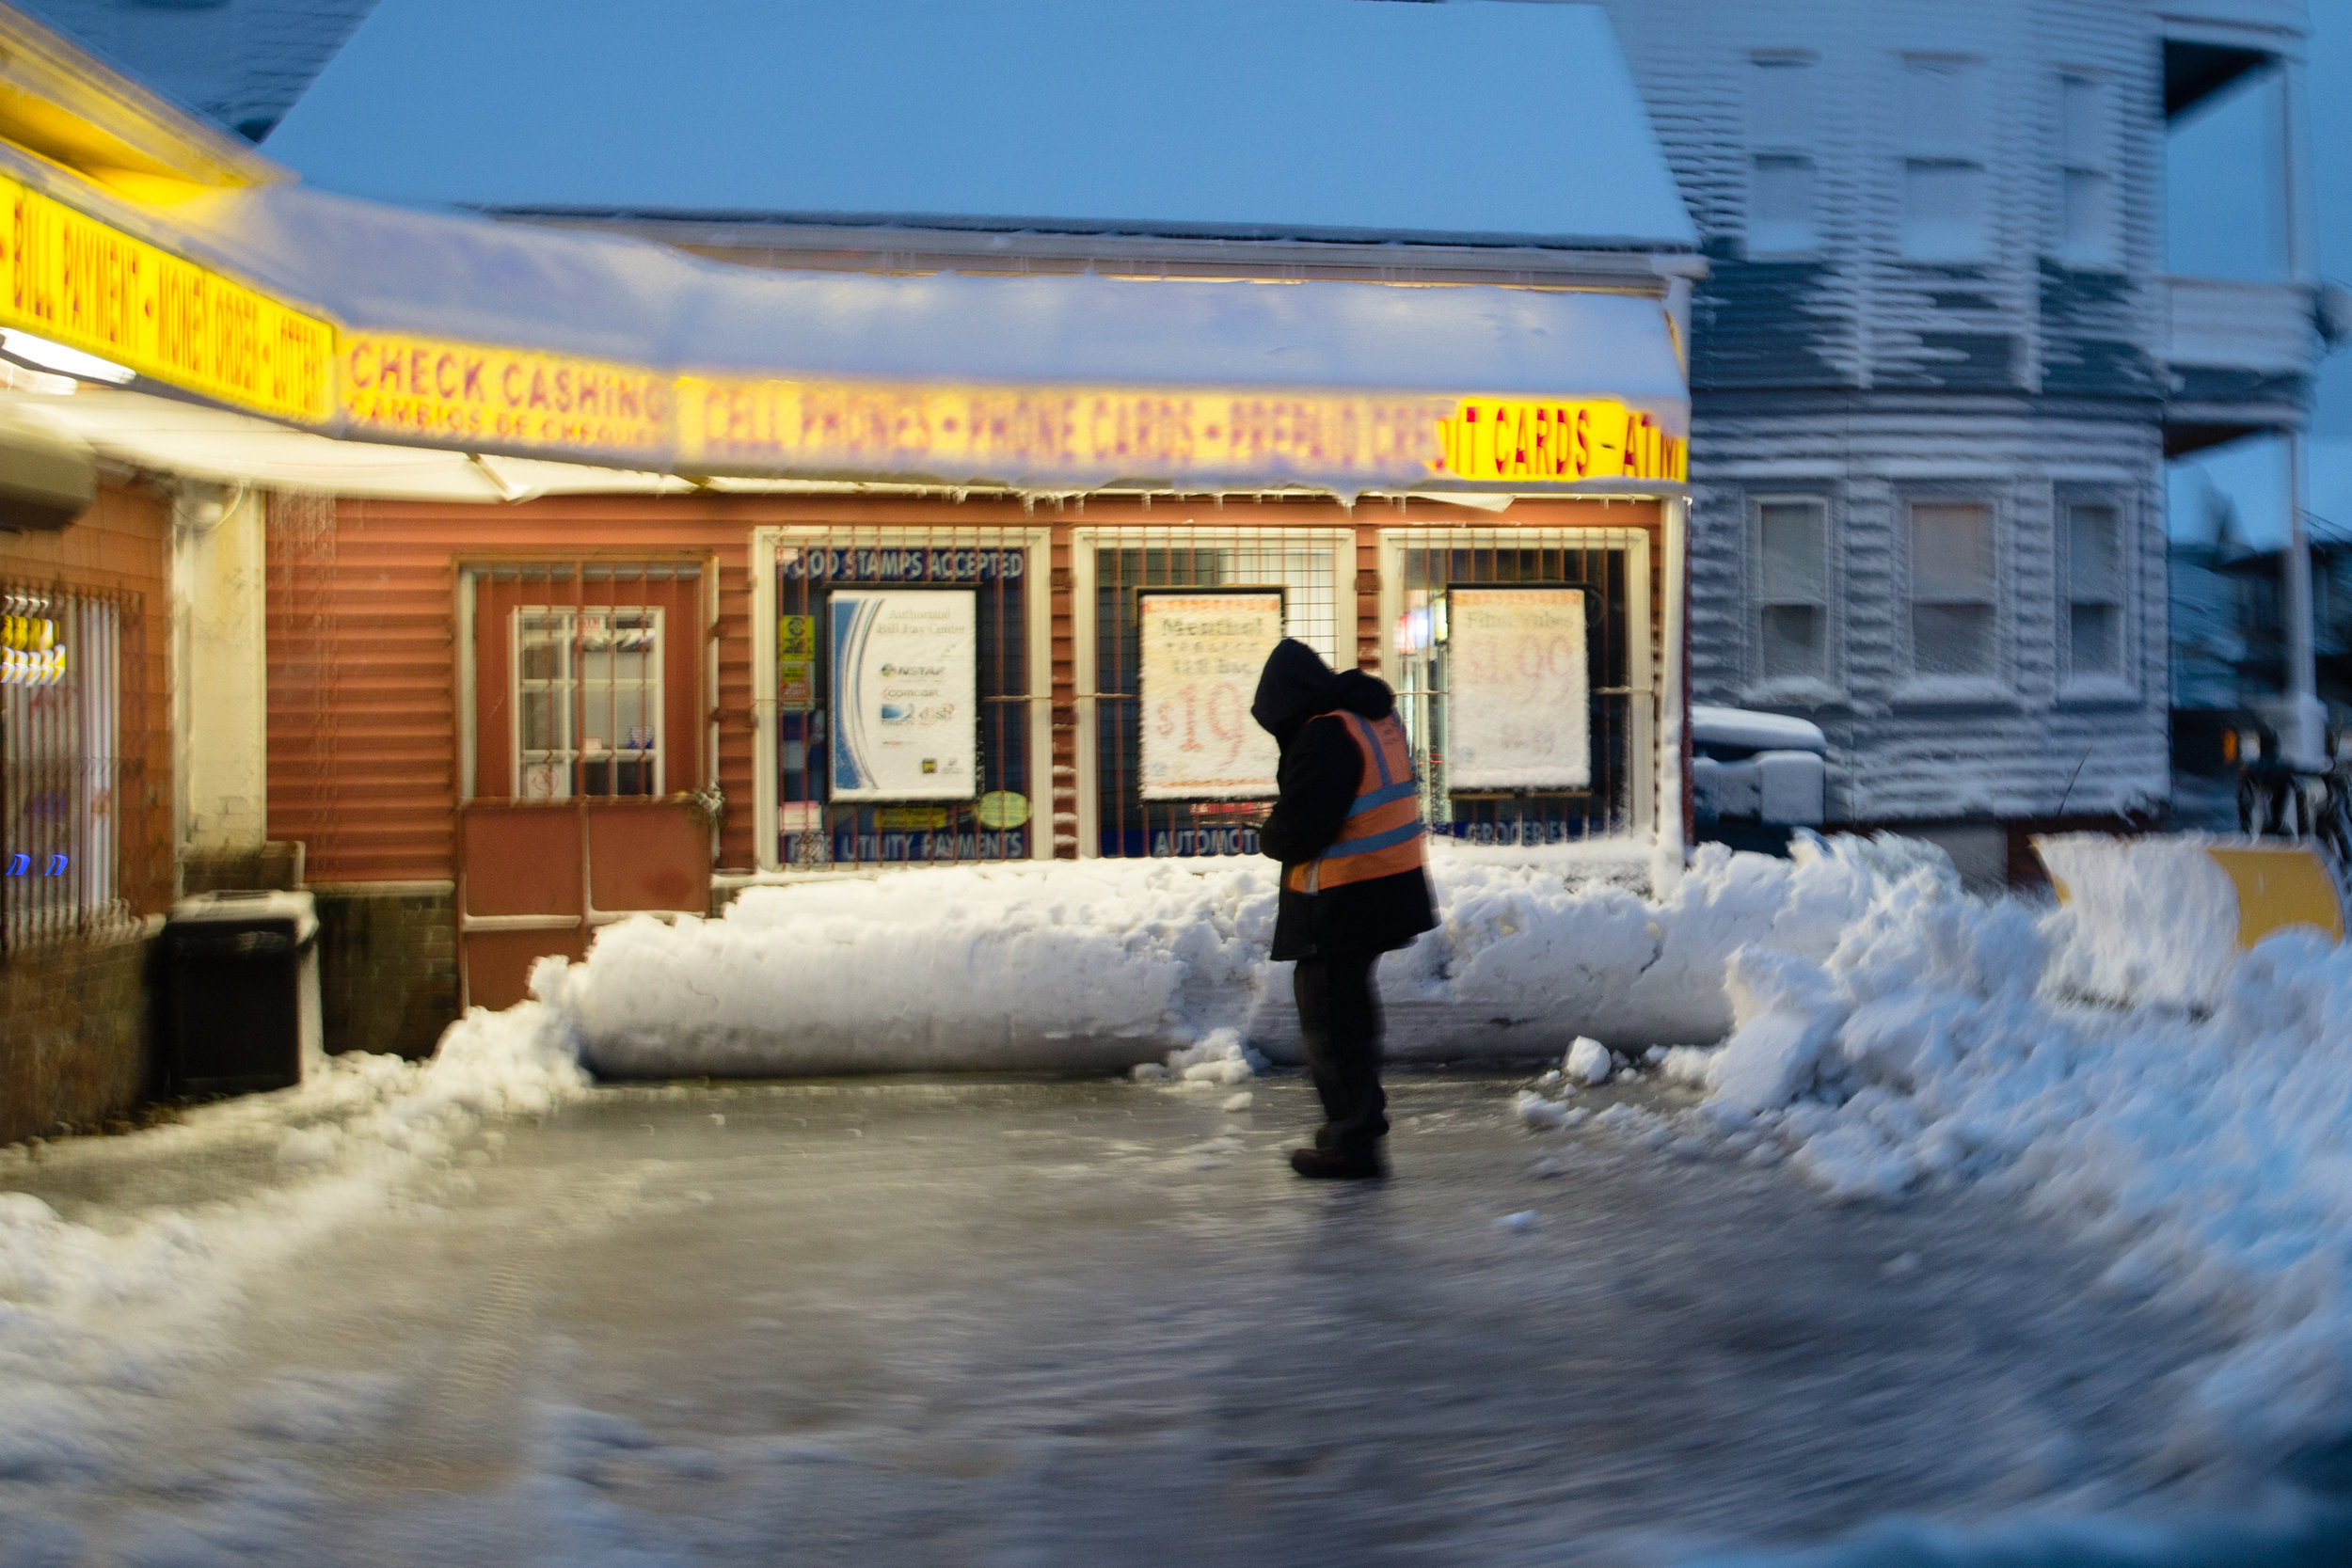 The morning after the blizzard. - New Bedford, MA